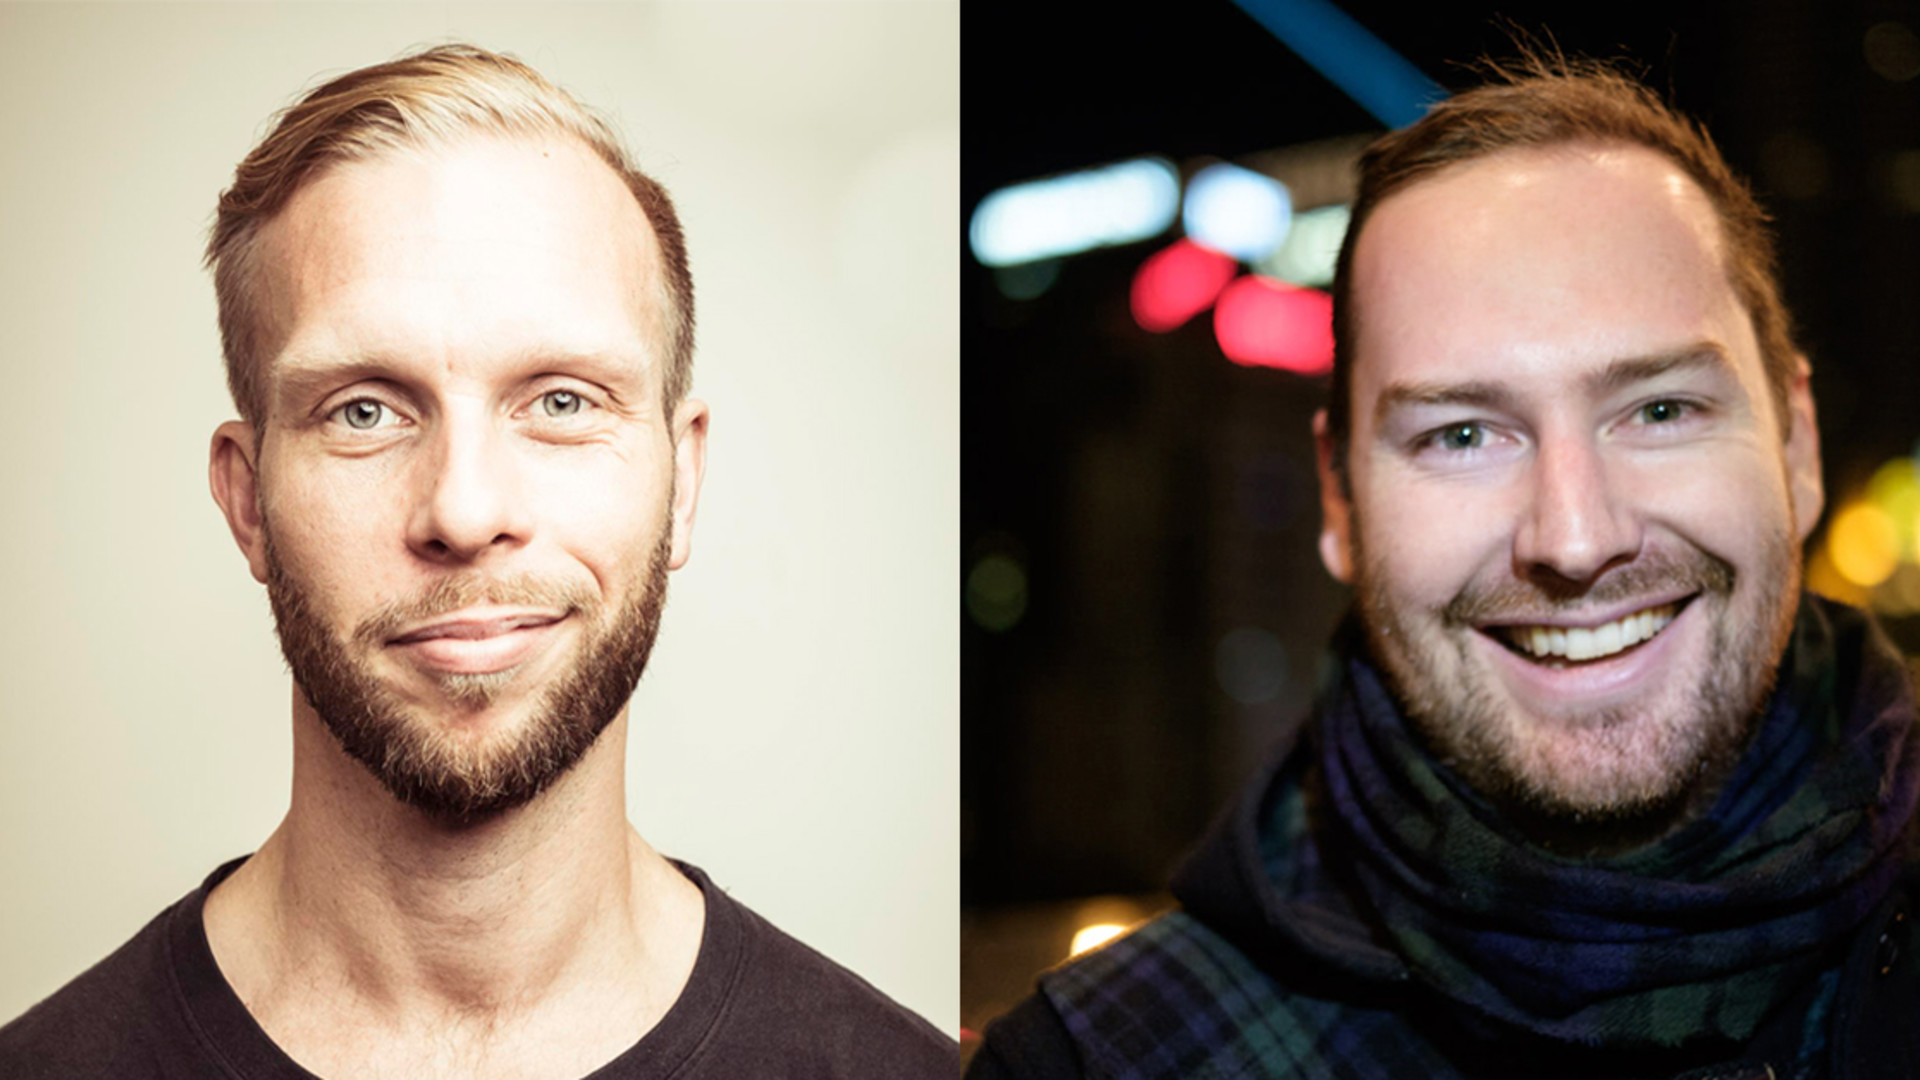 Two images side-by-side, two men with beards smiling